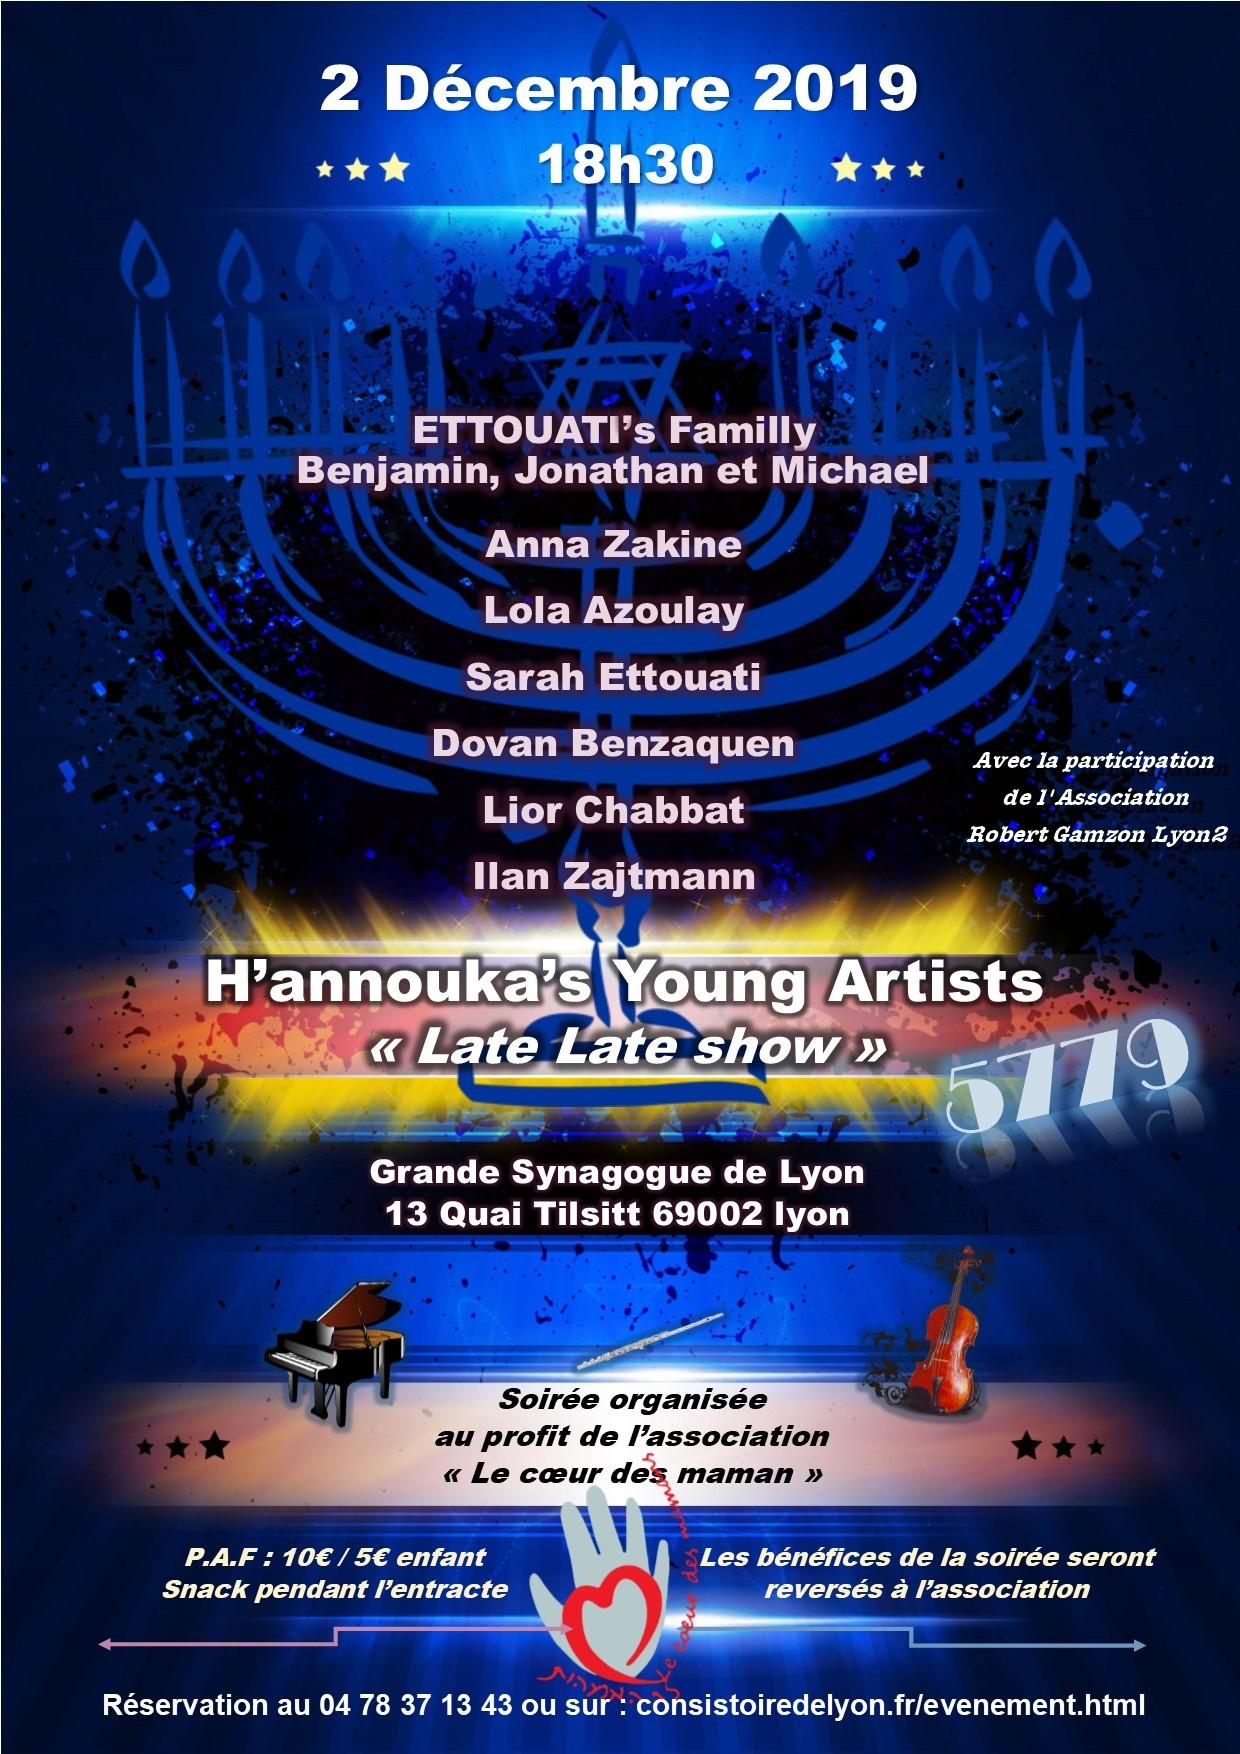 Late late show, avec les H'annouka'young artists